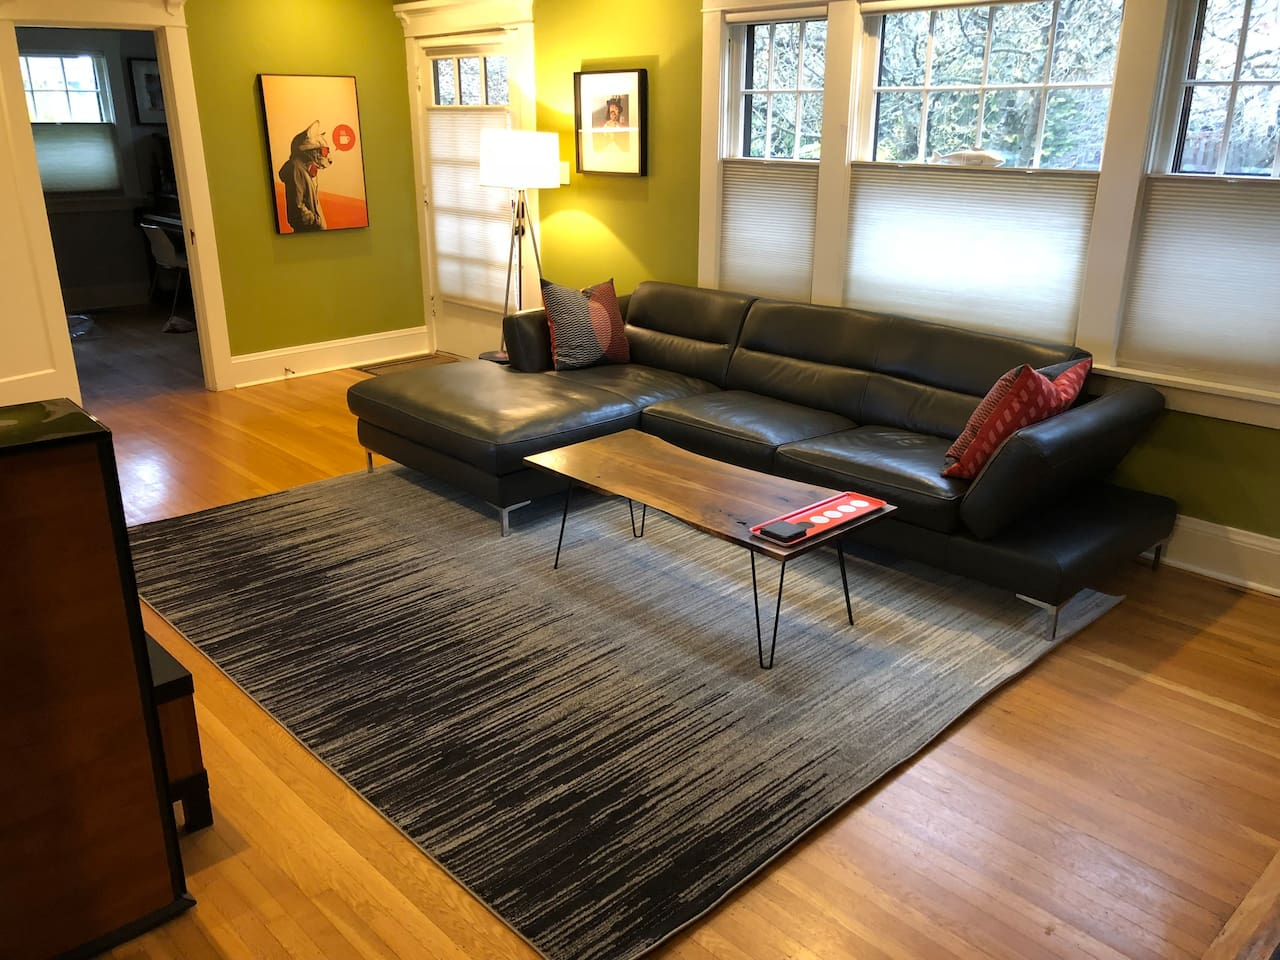 Great place to relax, watch a movie, play a guitar, or just plot your Portland adventures.